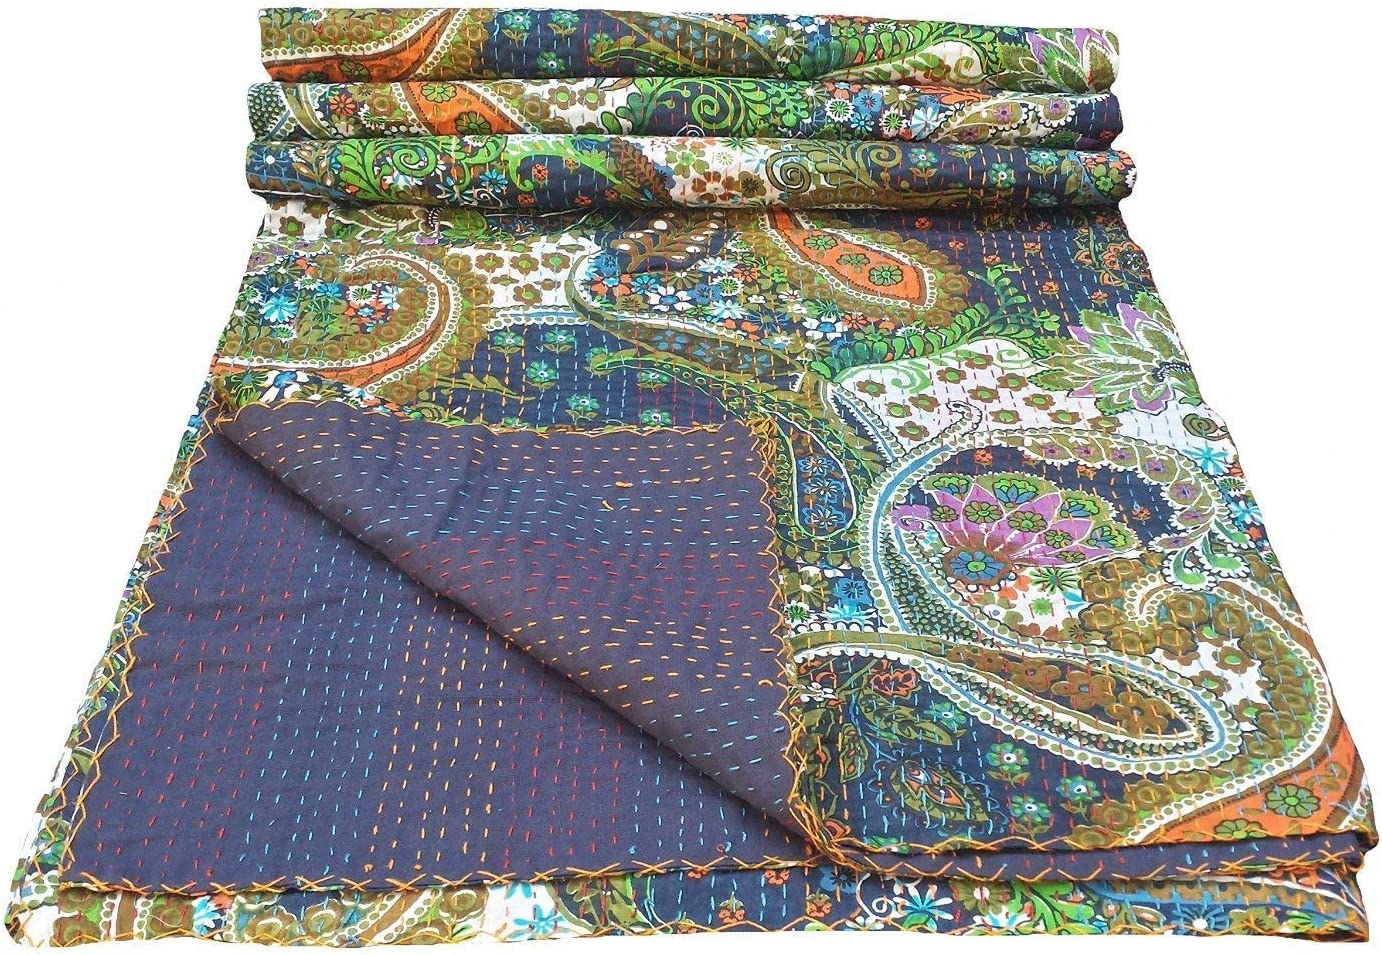 colors of rajasthan Indian Kantha Blanket, Bed Cover, King Kantha Bedspread, Bohemian Bedding Kantha Hippie Quilts (Purple)